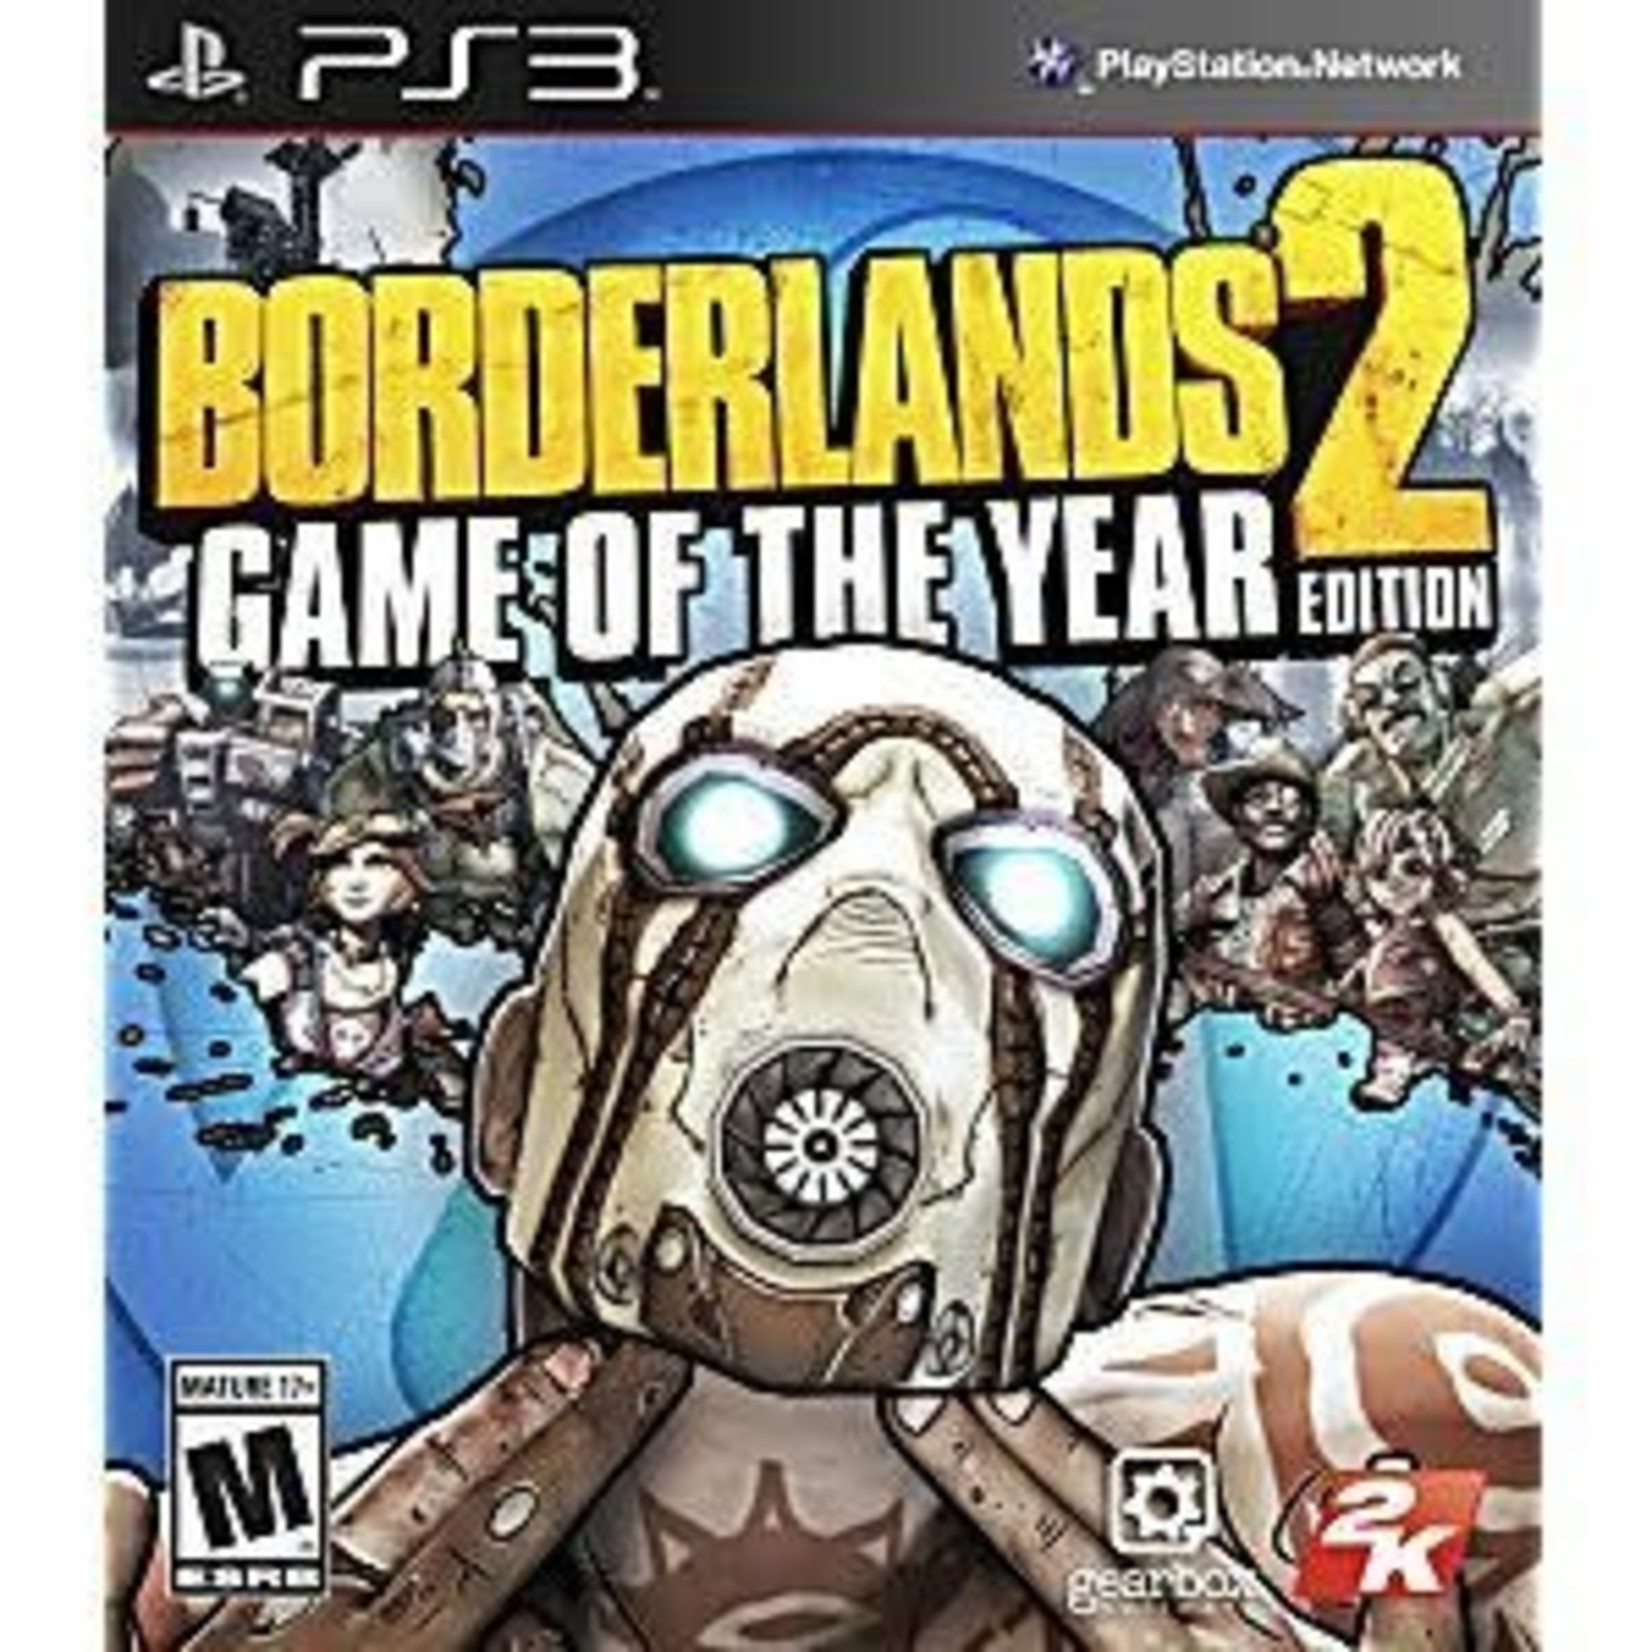 PS3-Borderlands 2 Game of the Year edition